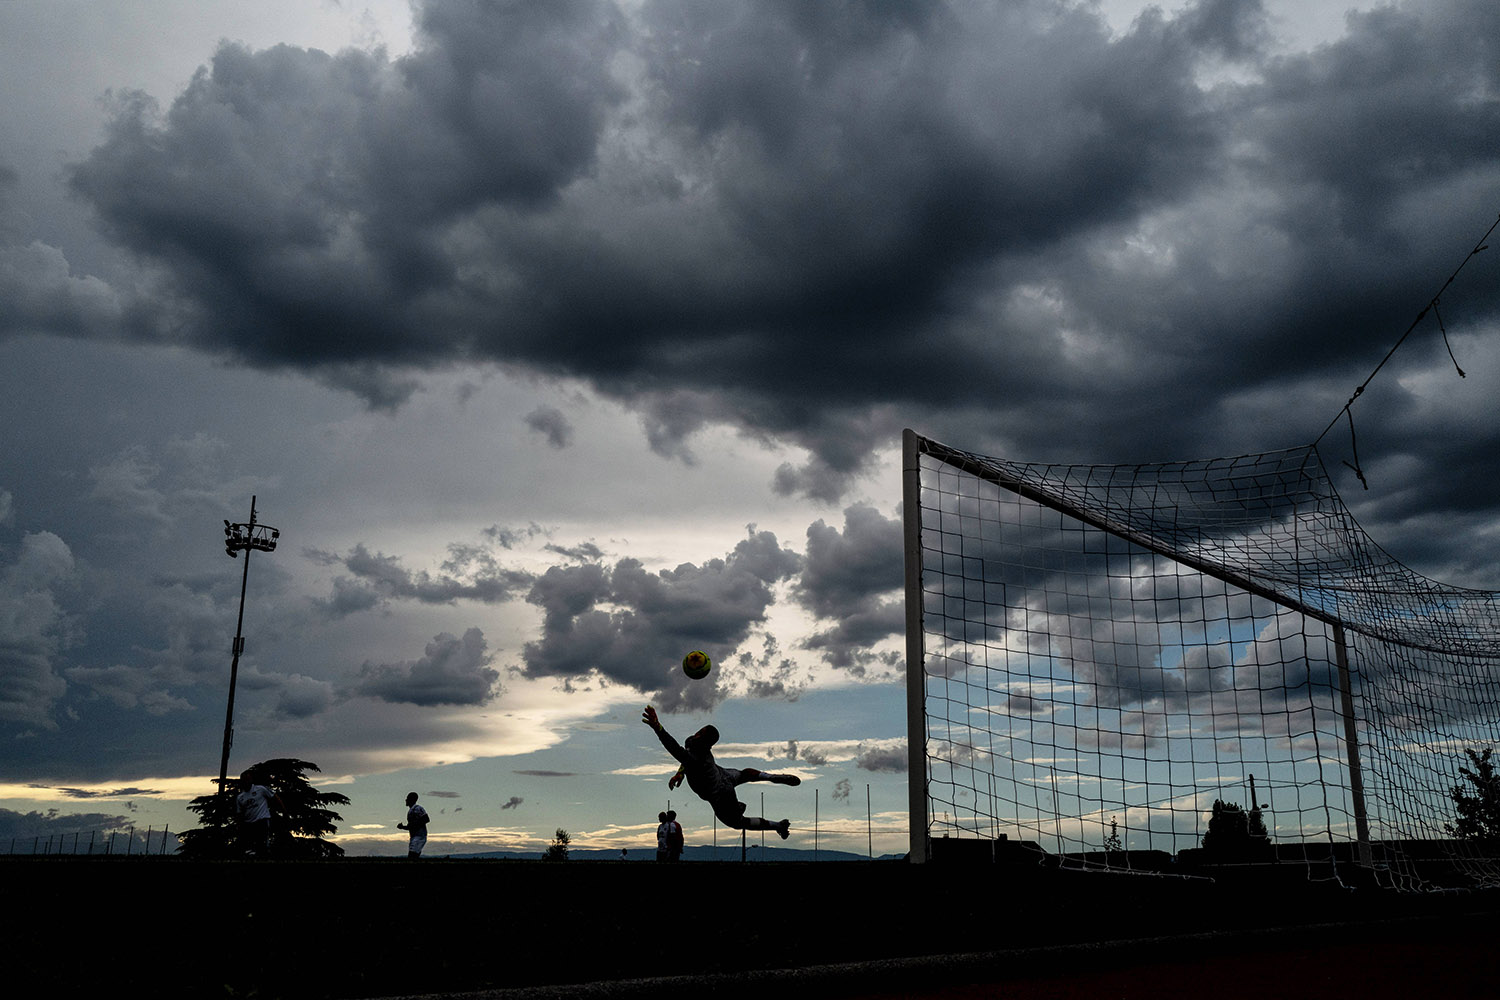 Olympique Lyonnais's Portuguese goalkeeper Anthony Lopes warms up prior to the start of a match between Lyon and U.S. Port-Valais in Évian-les-Bains, France, on July 1. JEFF PACHOUD/AFP via Getty Images